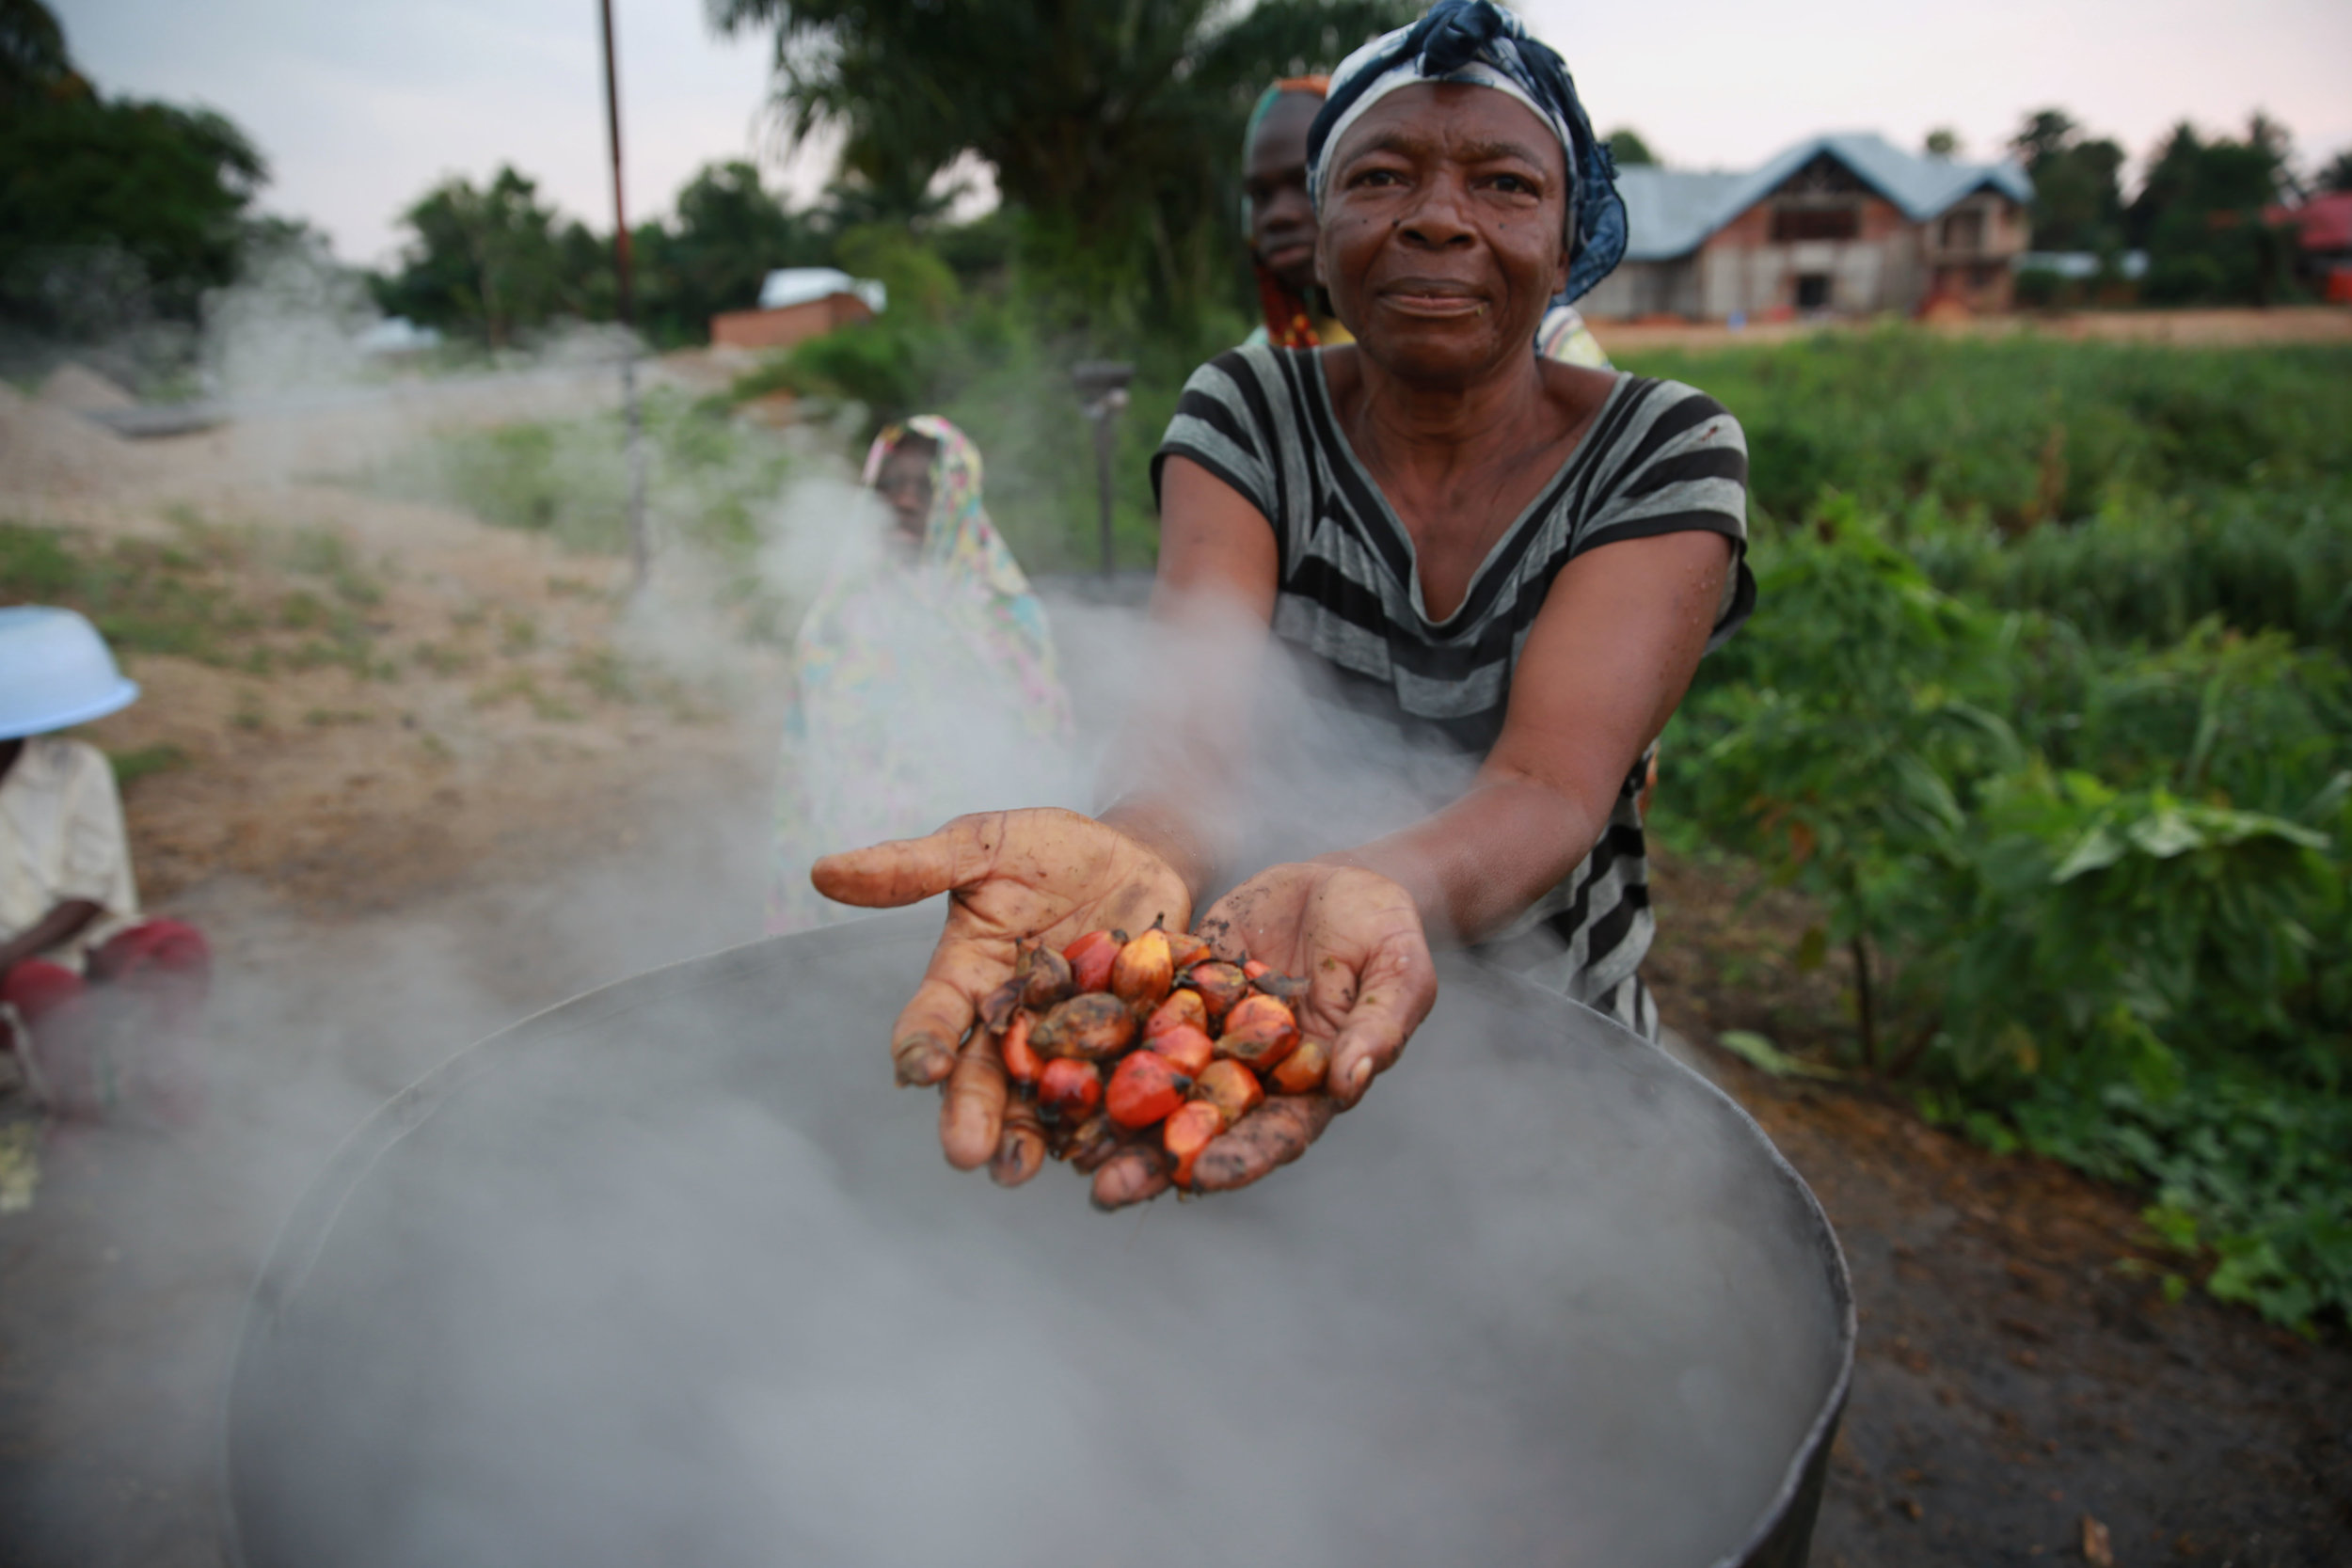 Palm Oil Production, DR Congo. Photo credit: http://bit.ly/2msgaEn